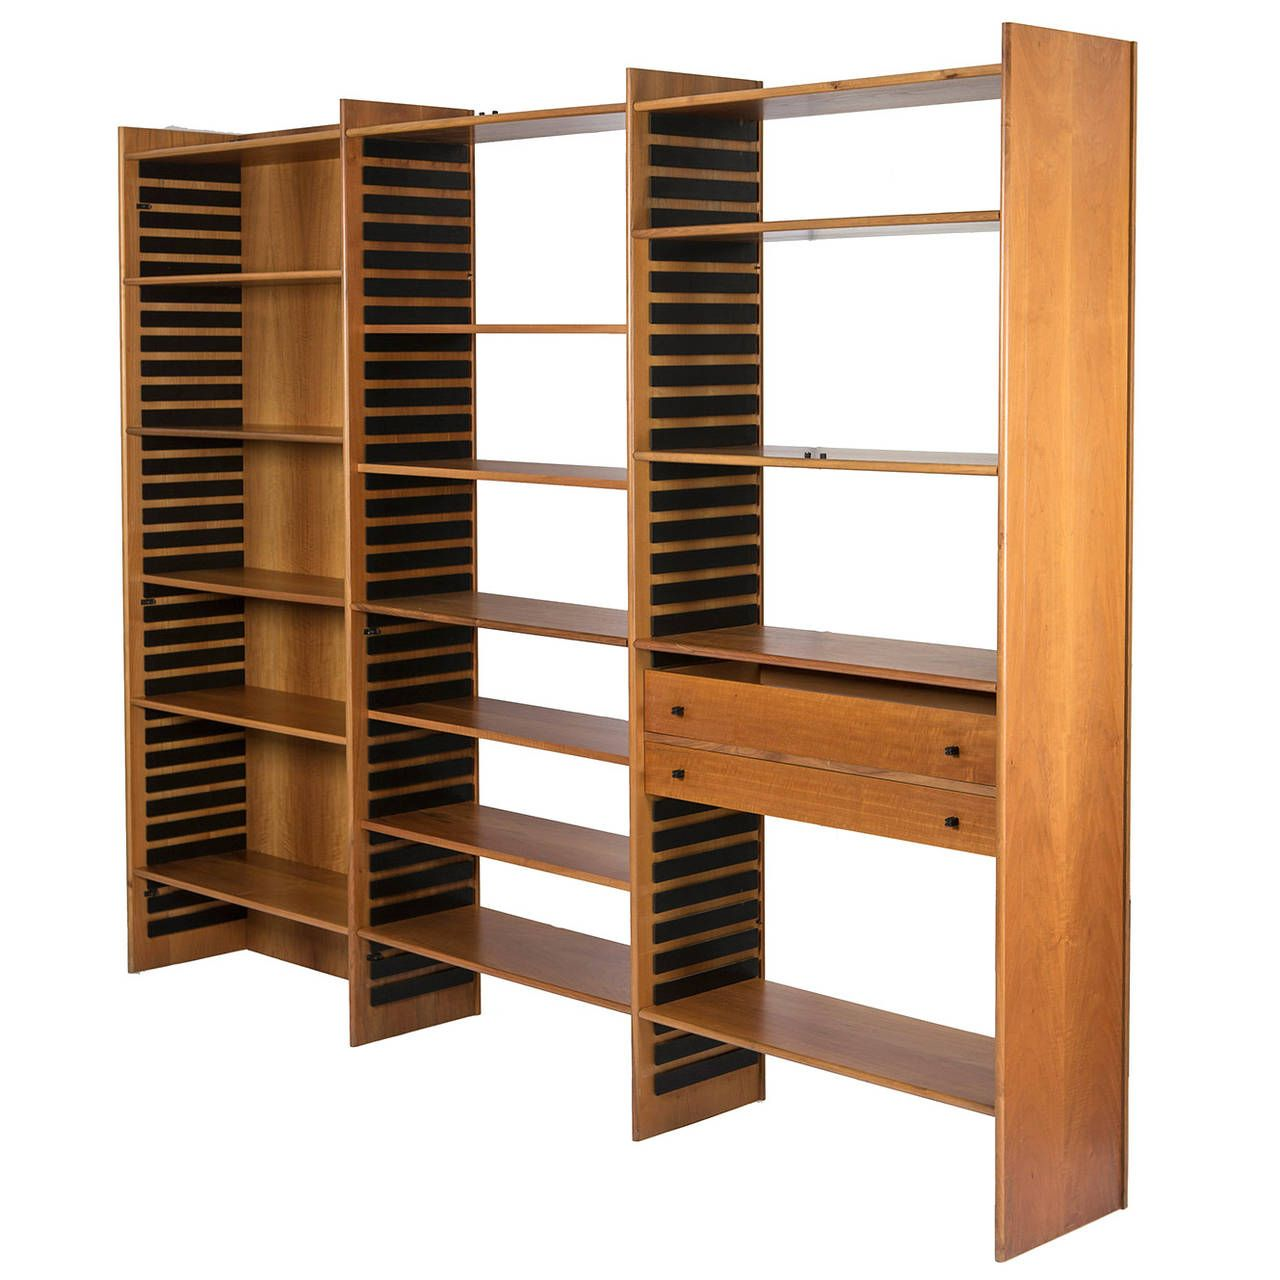 Materita Bookcase by Gianfranco Frattini for Bernini